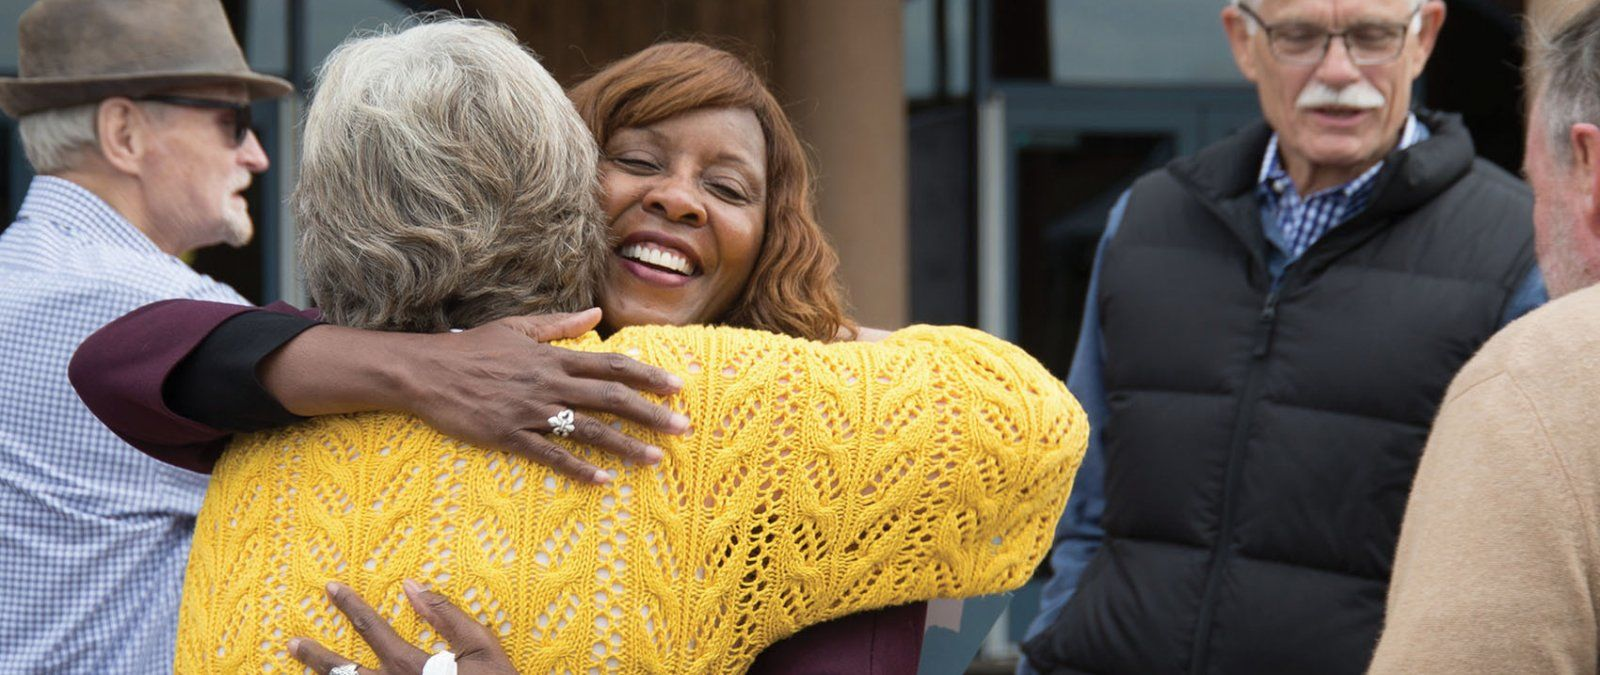 Two PLNU alumni greet each other with a hug during Homecoming